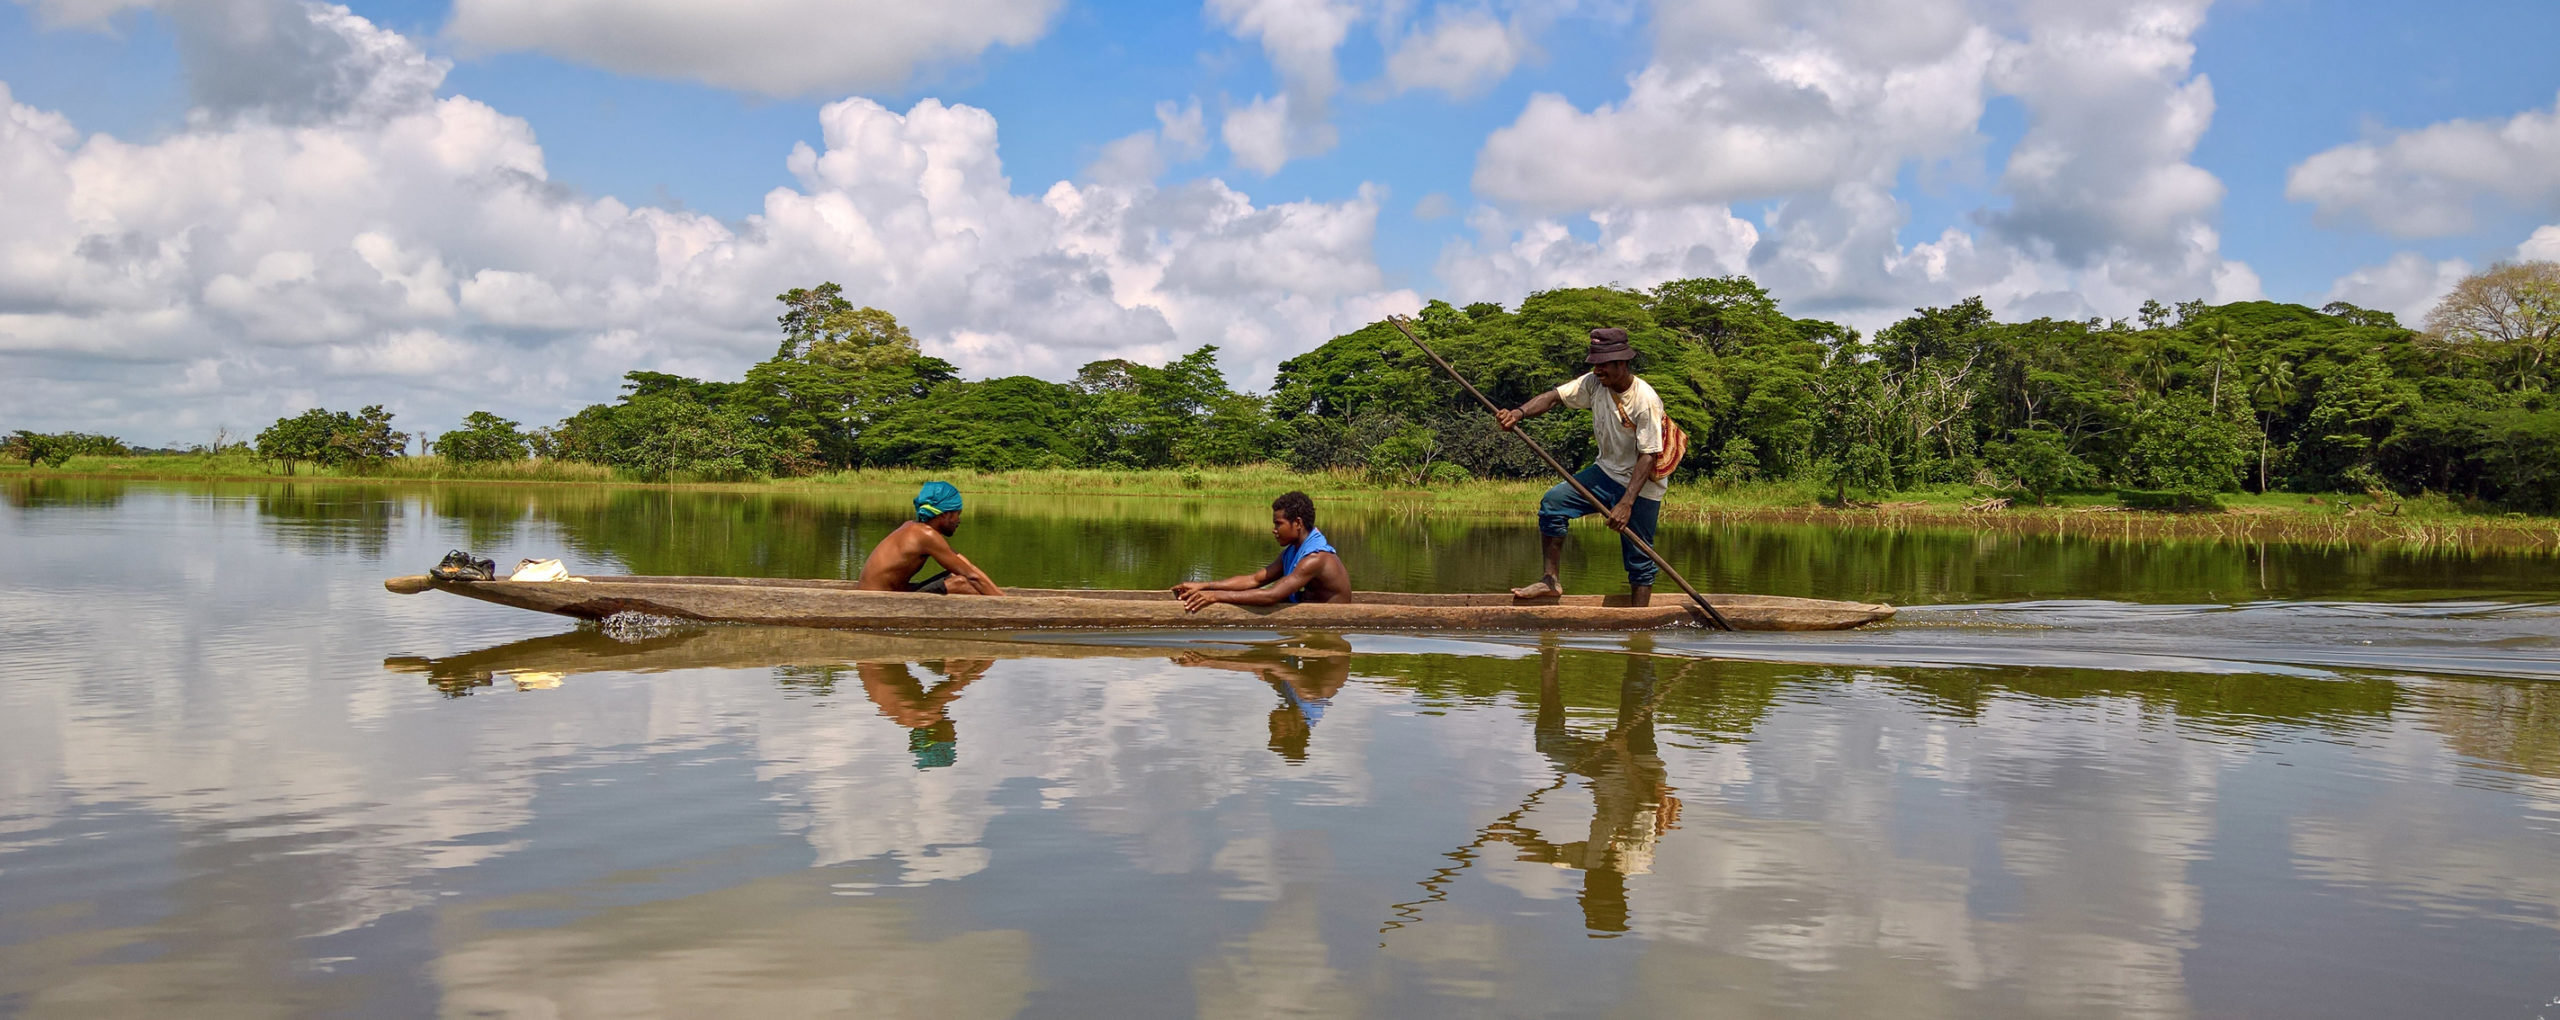 Photo of three Indigenous men in their traditional canoe travelling down the Sepik River in Papua New Guinea